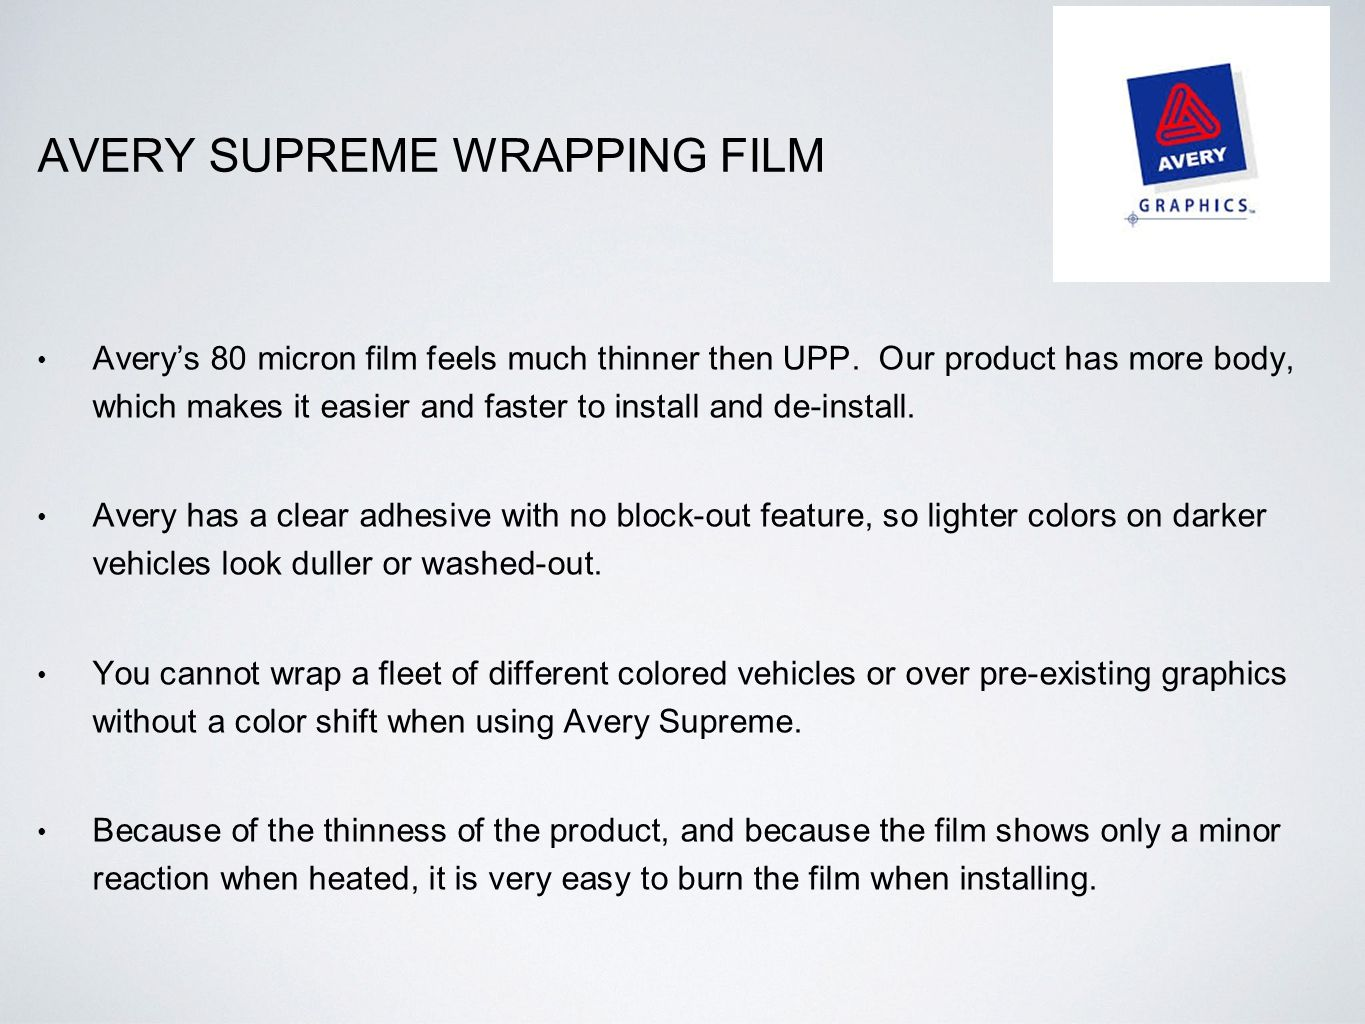 AVERY SUPREME WRAPPING FILM Avery's 80 micron film feels much thinner then UPP. Our product has more body, which makes it easier and faster to install